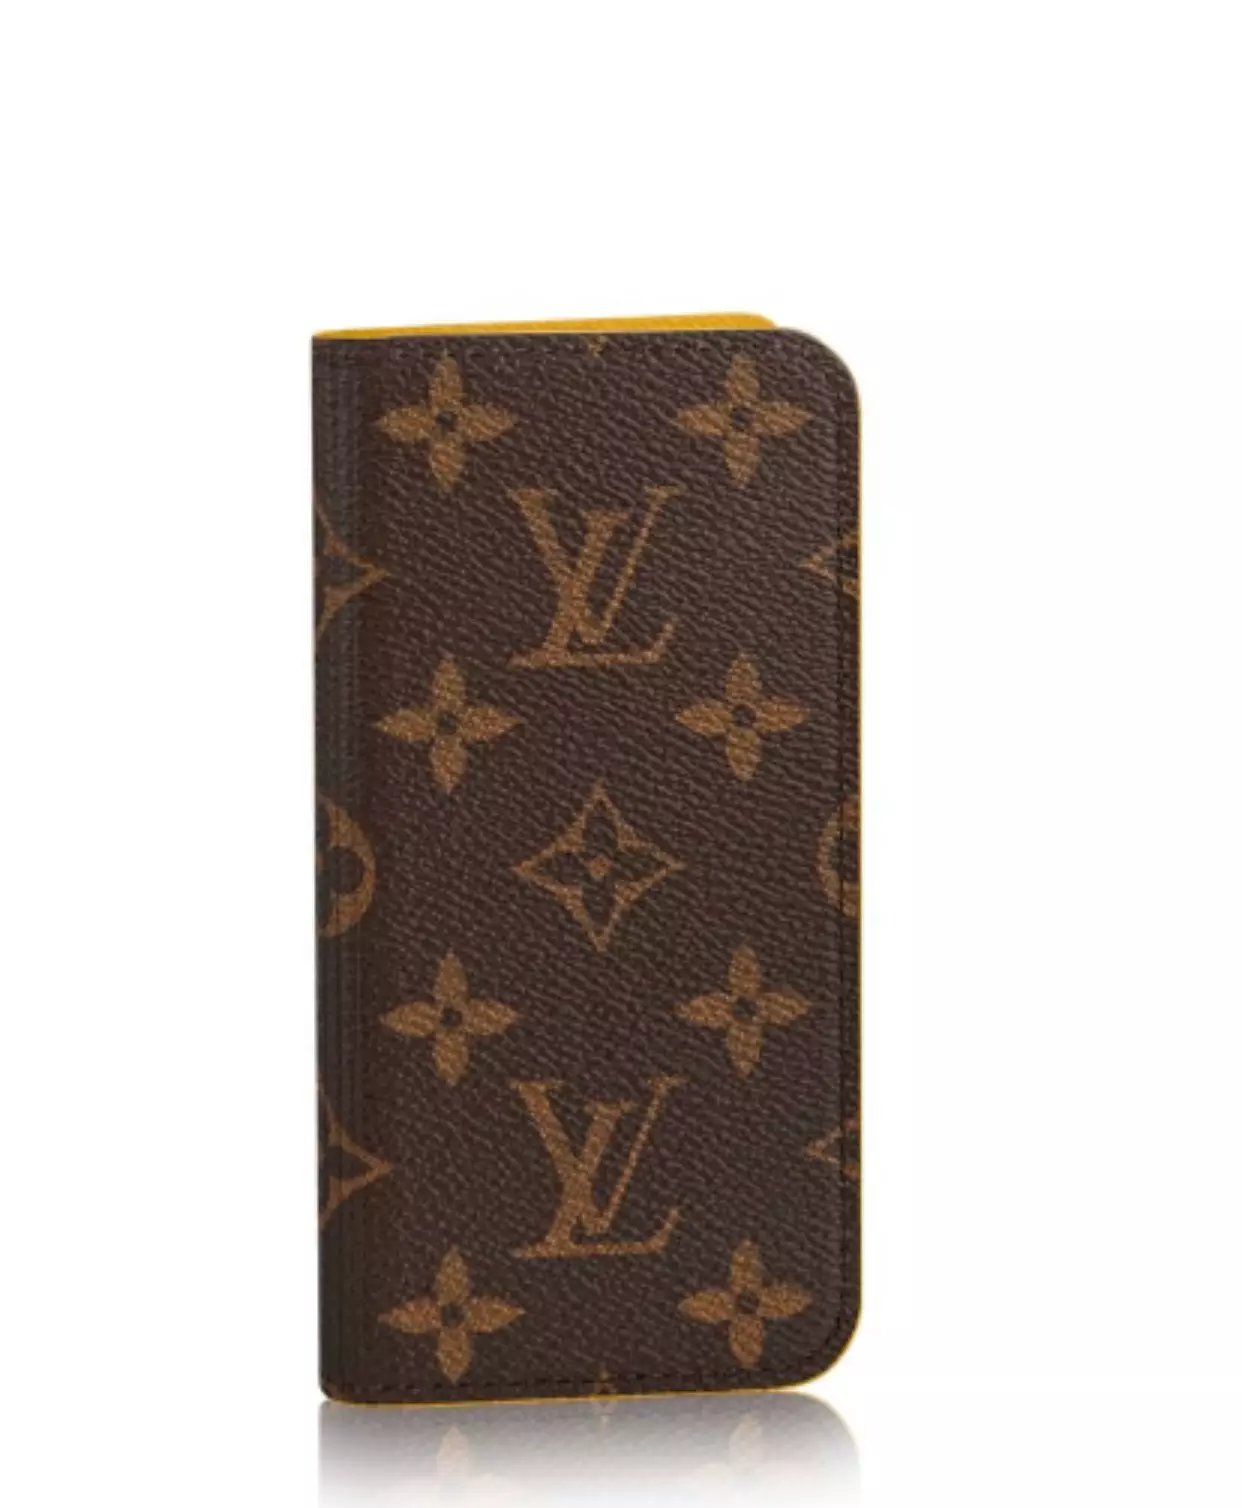 custom cases for iphone 8 designer iphone 8 covers Louis Vuitton iphone 8 case life cell phone case best case for iphone 8 s designer phone case iphone 6 iphone 8 wristlet case apple iphone 8 cover best cell phone cases